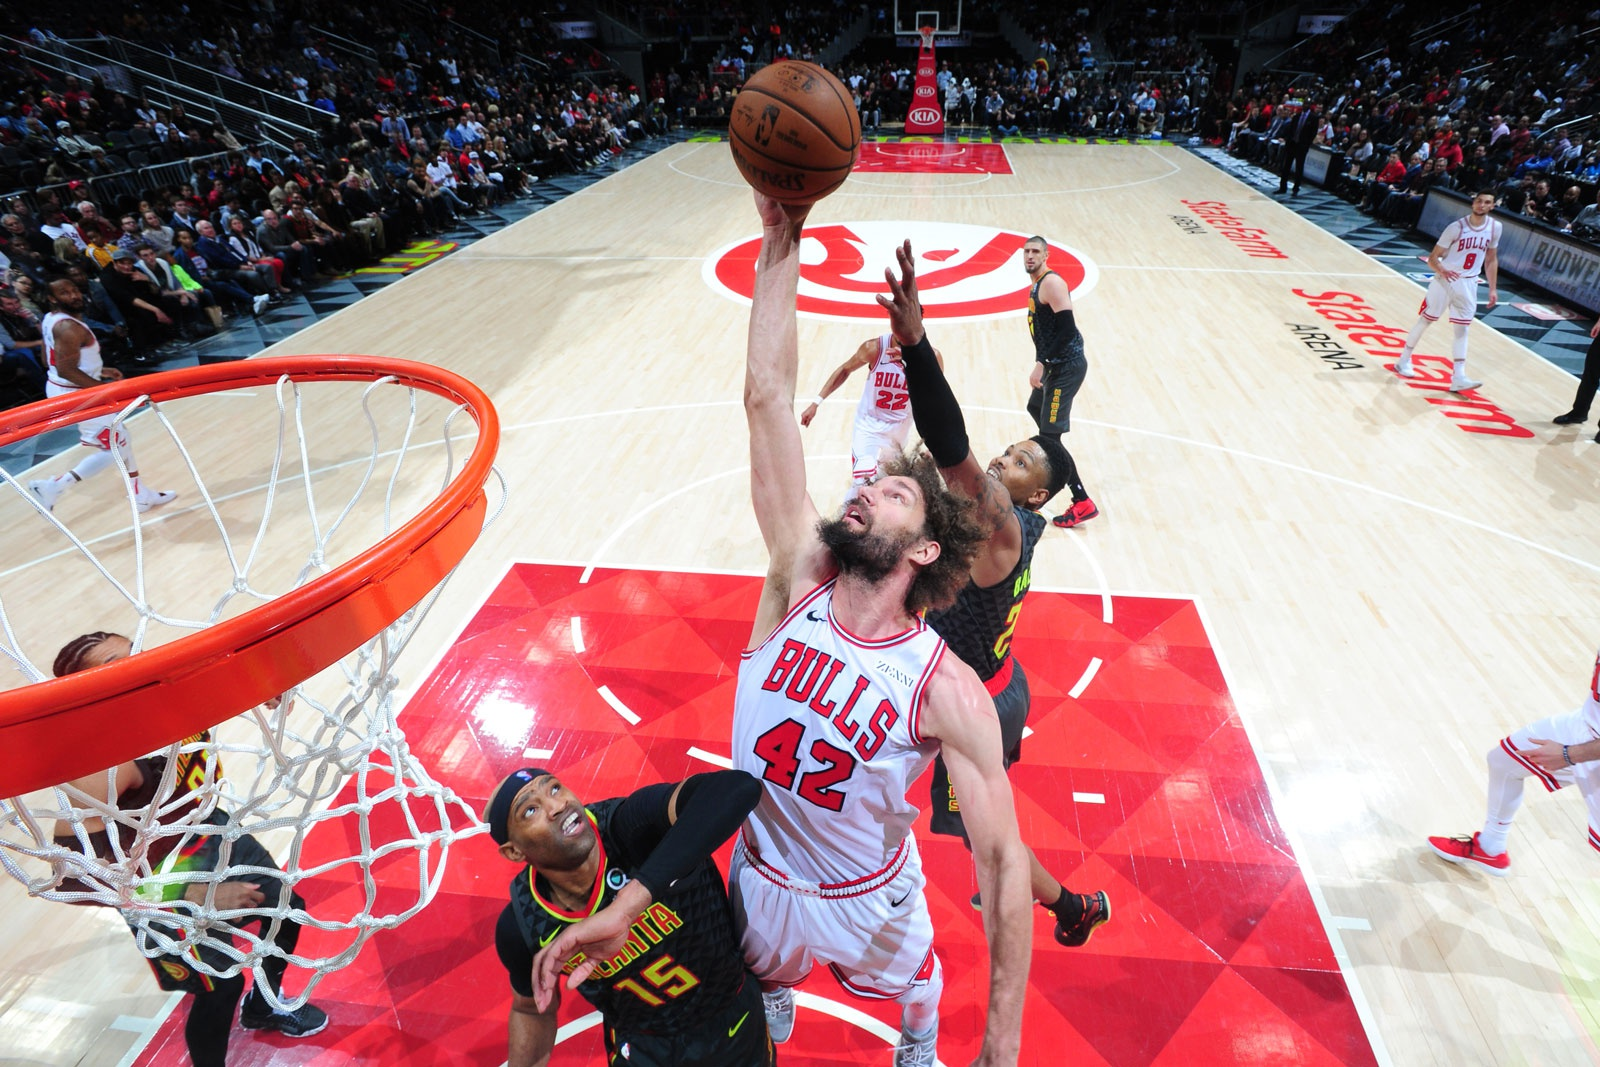 Robin Lopez #42 of the Chicago Bulls attempts to shoots the ball against the Atlanta Hawks on March 1, 2019 at State Farm Arena in Atlanta, Georgia.